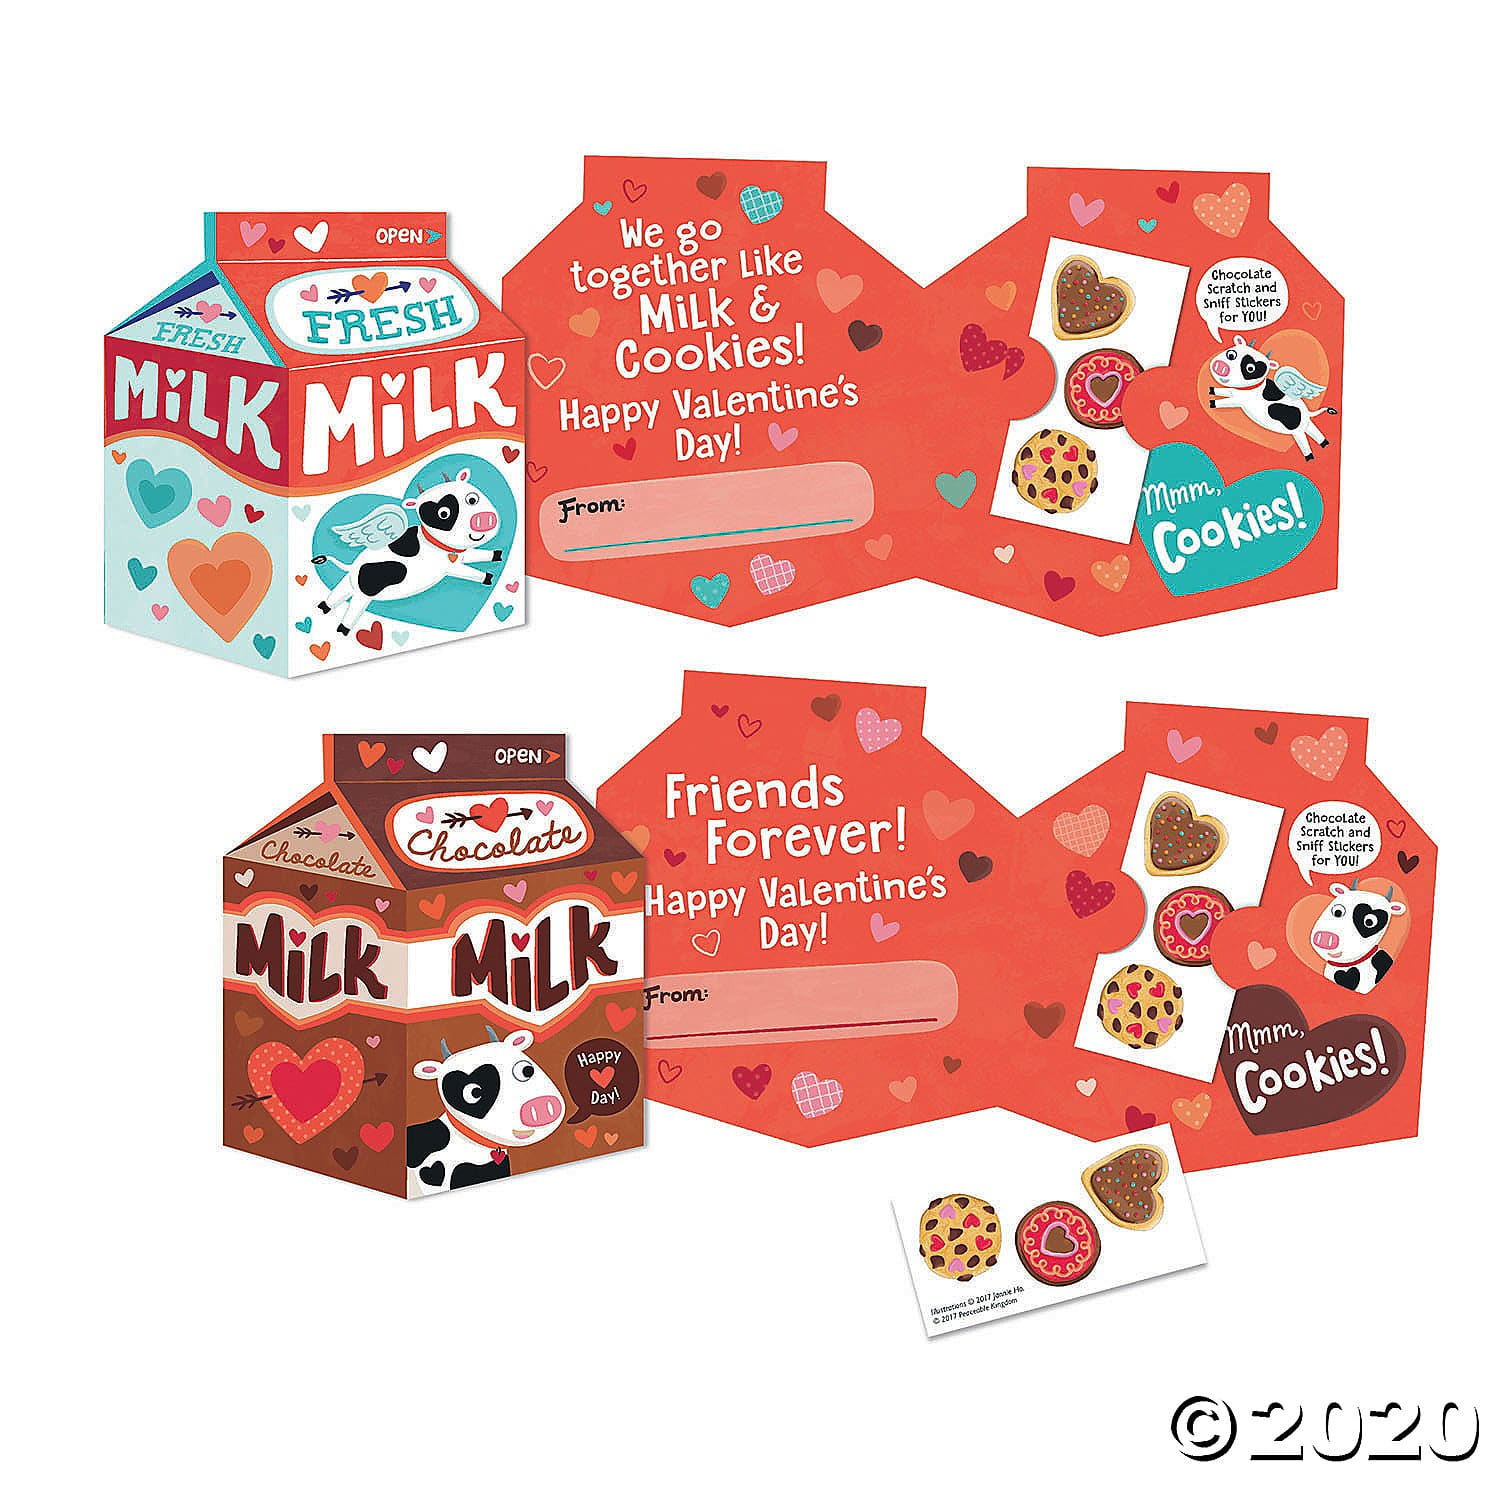 Milk & Cookies Scratch And Sniff Super Fun Valentines Pack. Featuring 28 cleverly designed cards with real envelopes, the Super Valentine Fun Pack lets your child give more than just a greeting - they get to give FUN! 2020 Valentine's Day Gift Guide from Jays Sweet N Sour Life Blog.